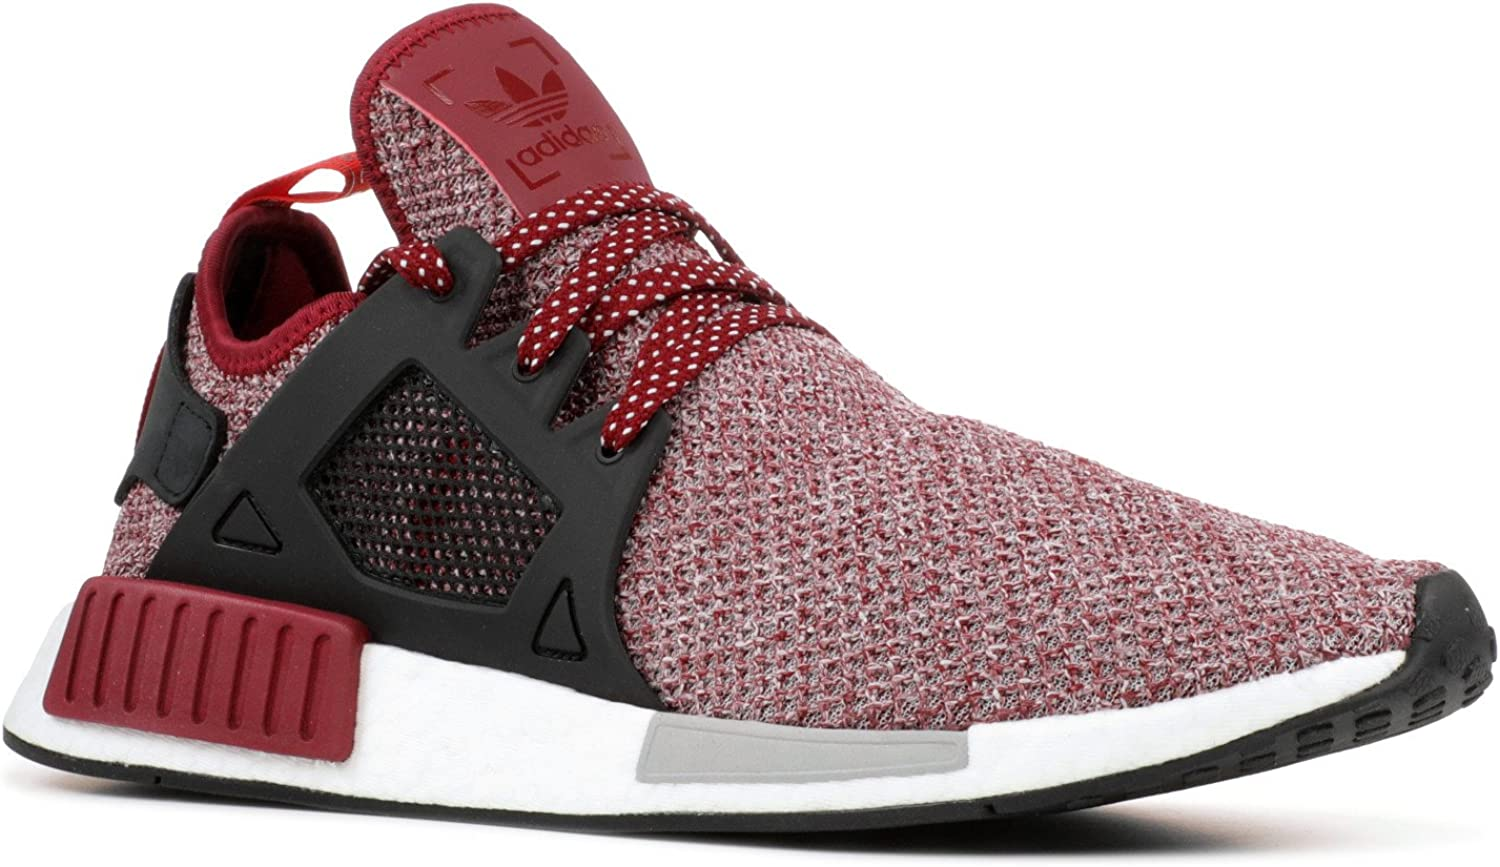 promo code a7410 4e936 Adidas RED' CQ1988 - 'Mystery XR1 NMD nrnx523a32781-New ...